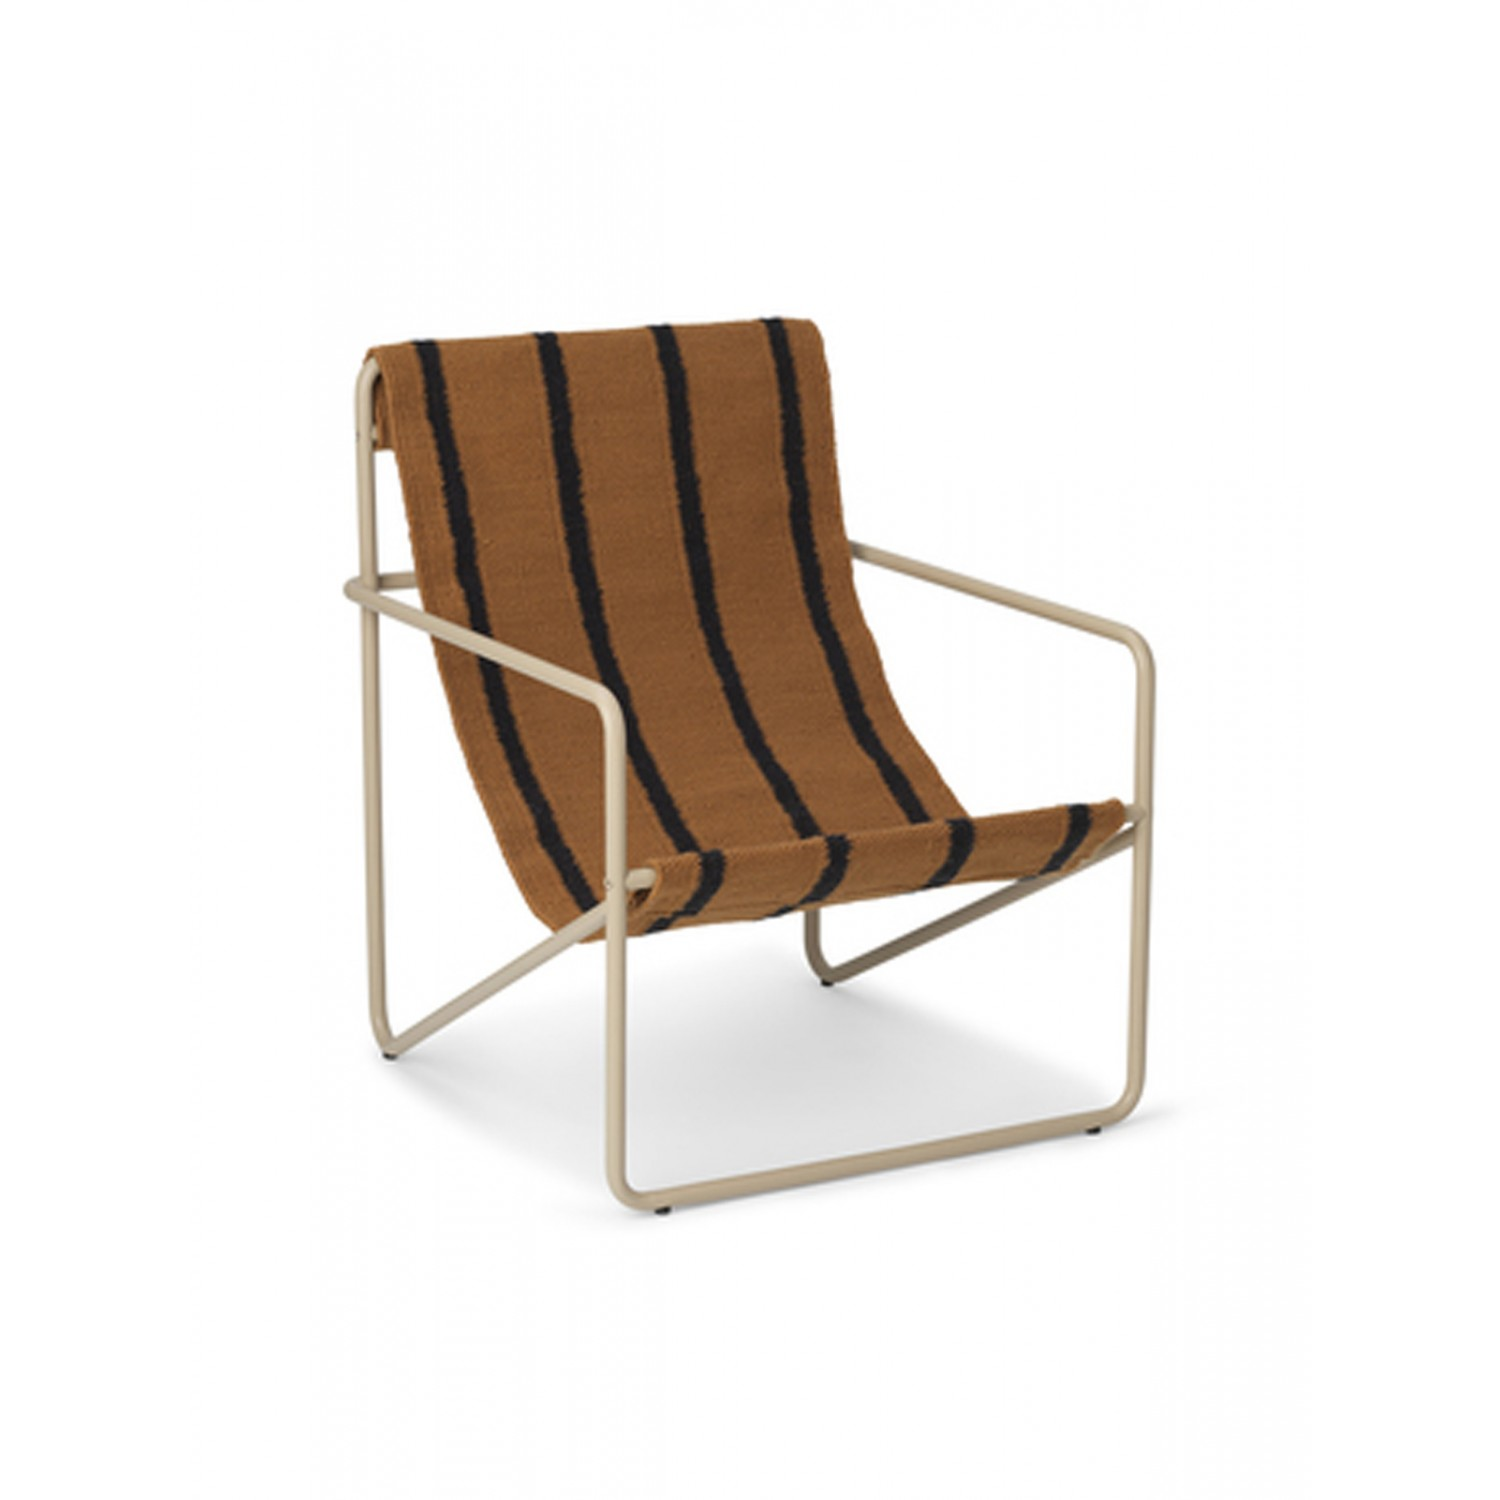 Desert Chair KidsCashmere/Stripe